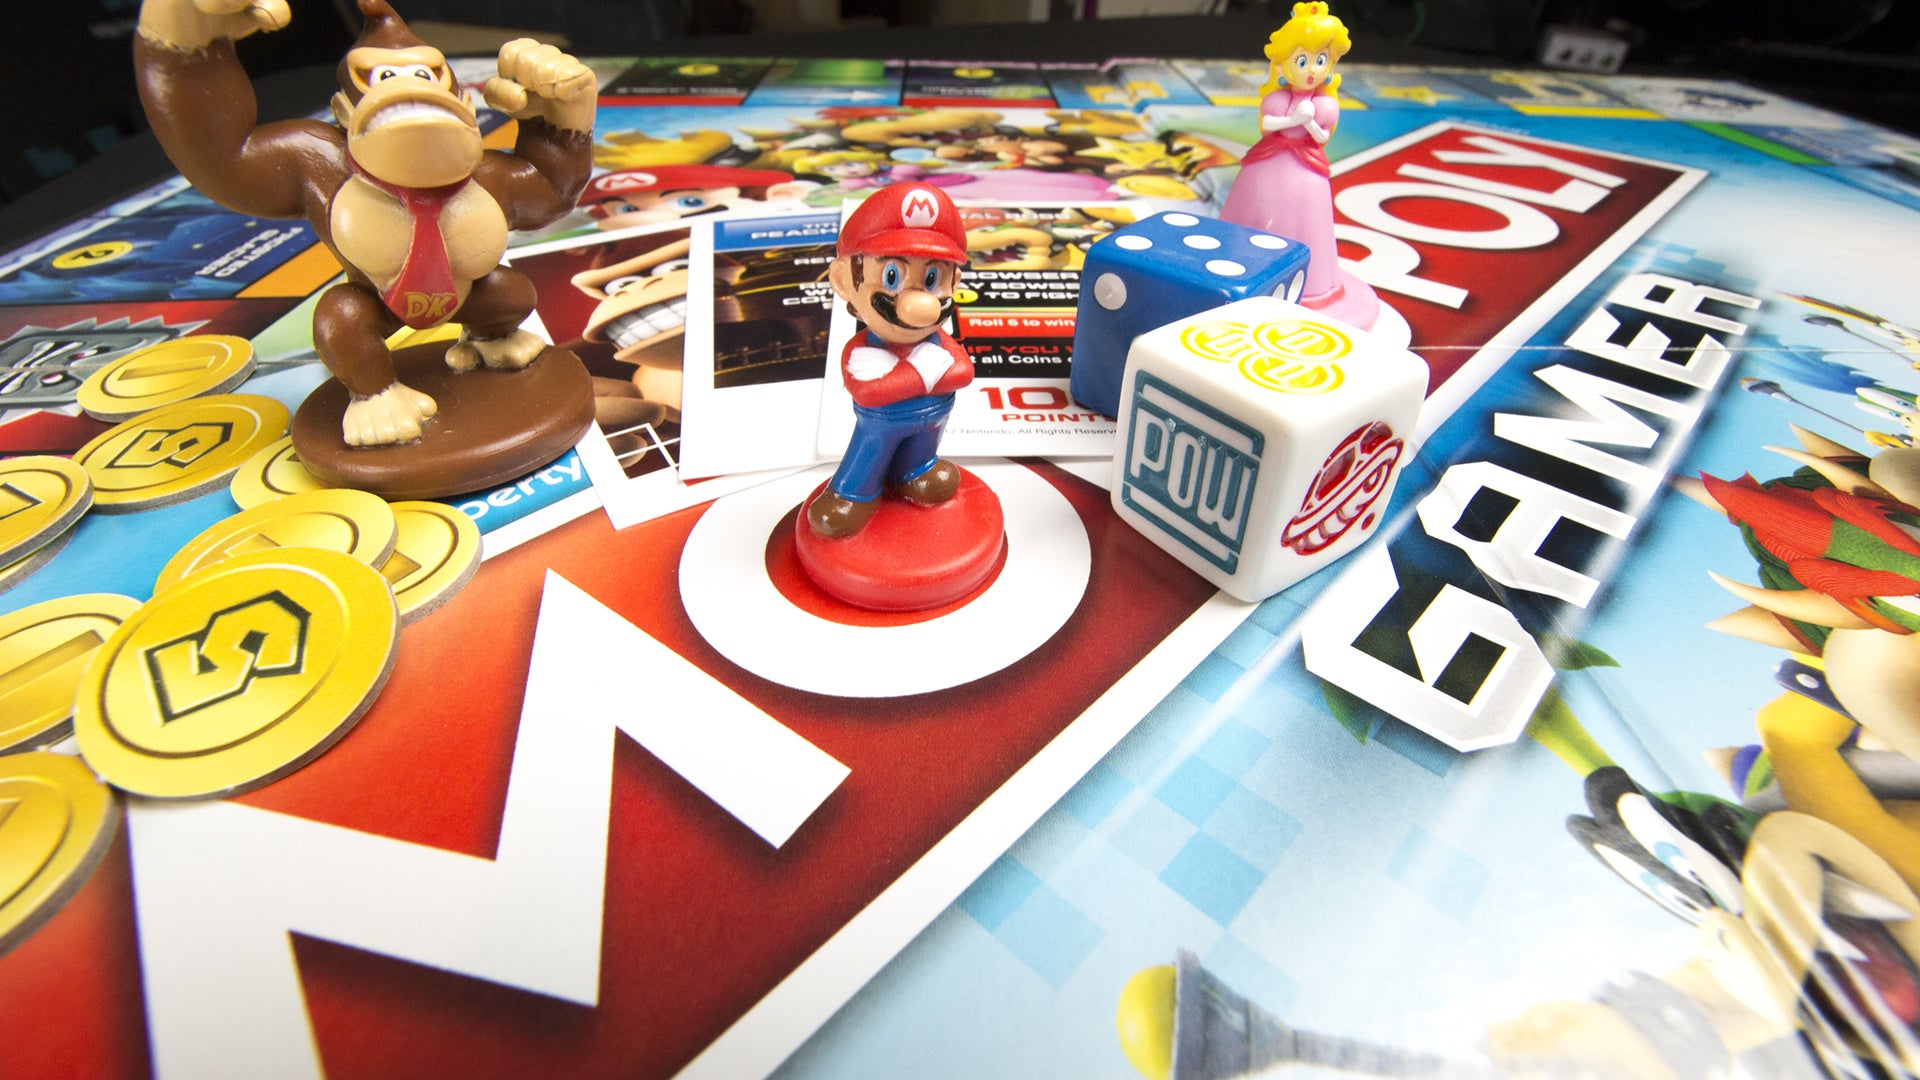 Mario-Themed Monopoly Gamer Has Power-Ups And Boss Battles